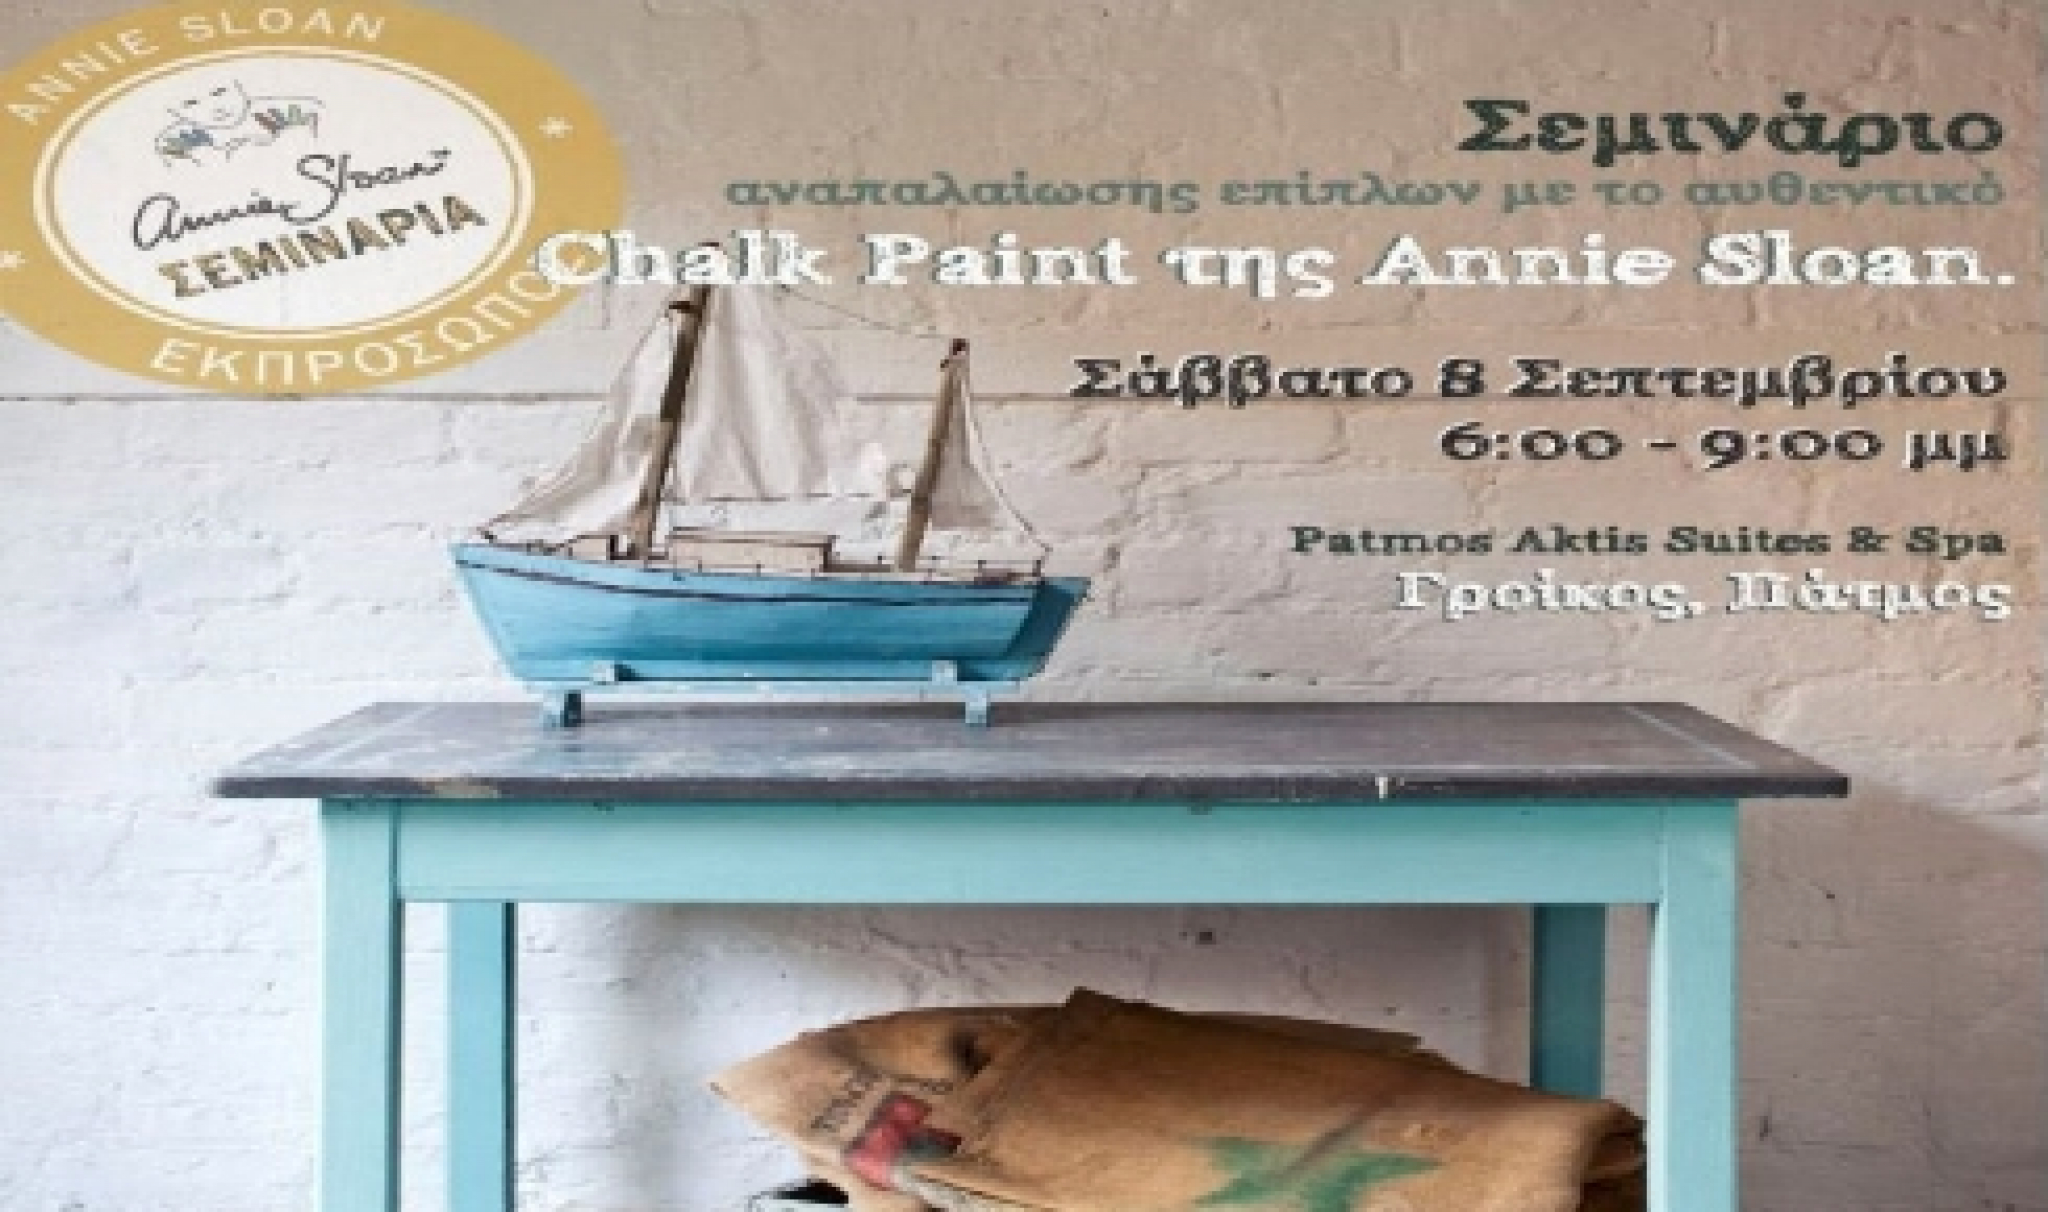 Furniture restoration workshop using the authentic Annie Sloan Chalk Paint